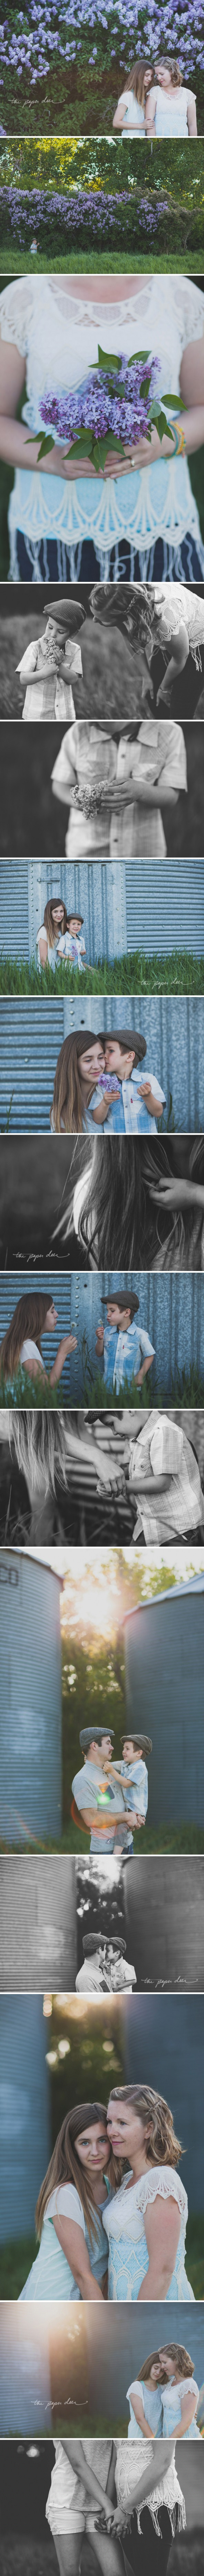 family lifestyle photography | ©The Paper Deer Photography | thepaperdeer.ca